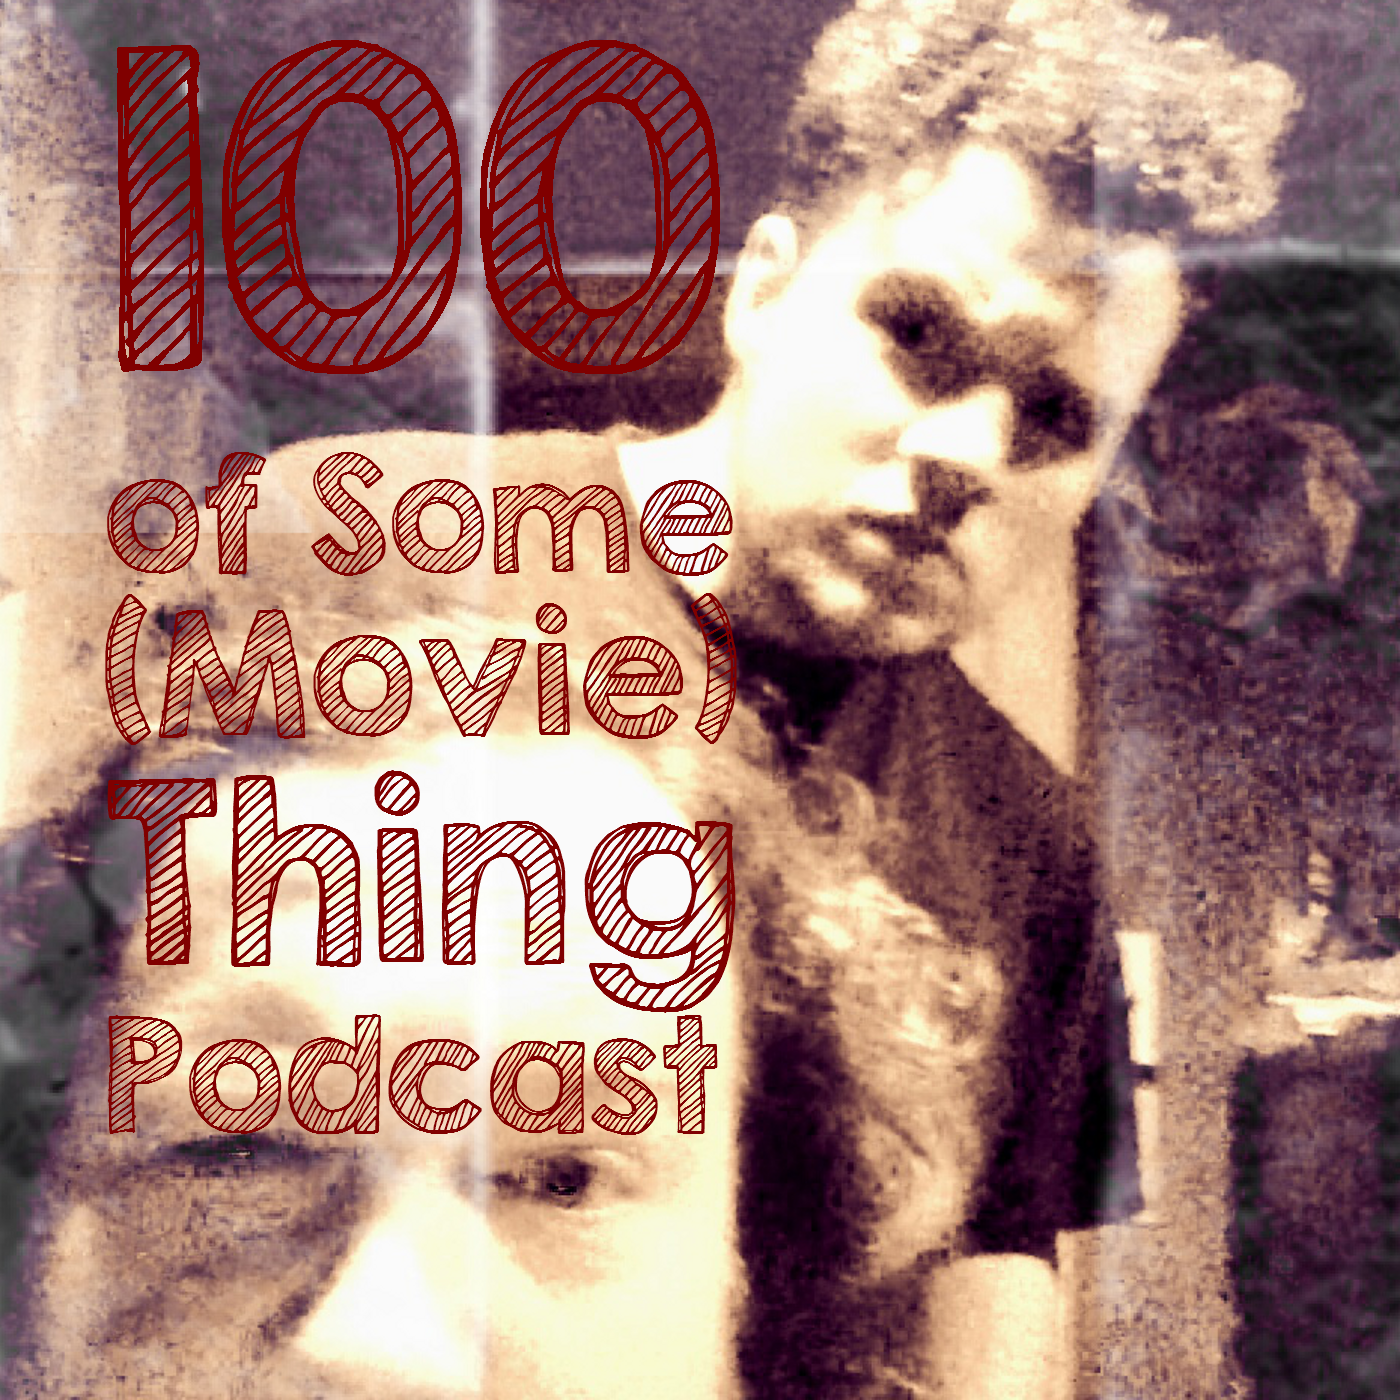 100 of Some(Movie)Thing 033, Unforgiven